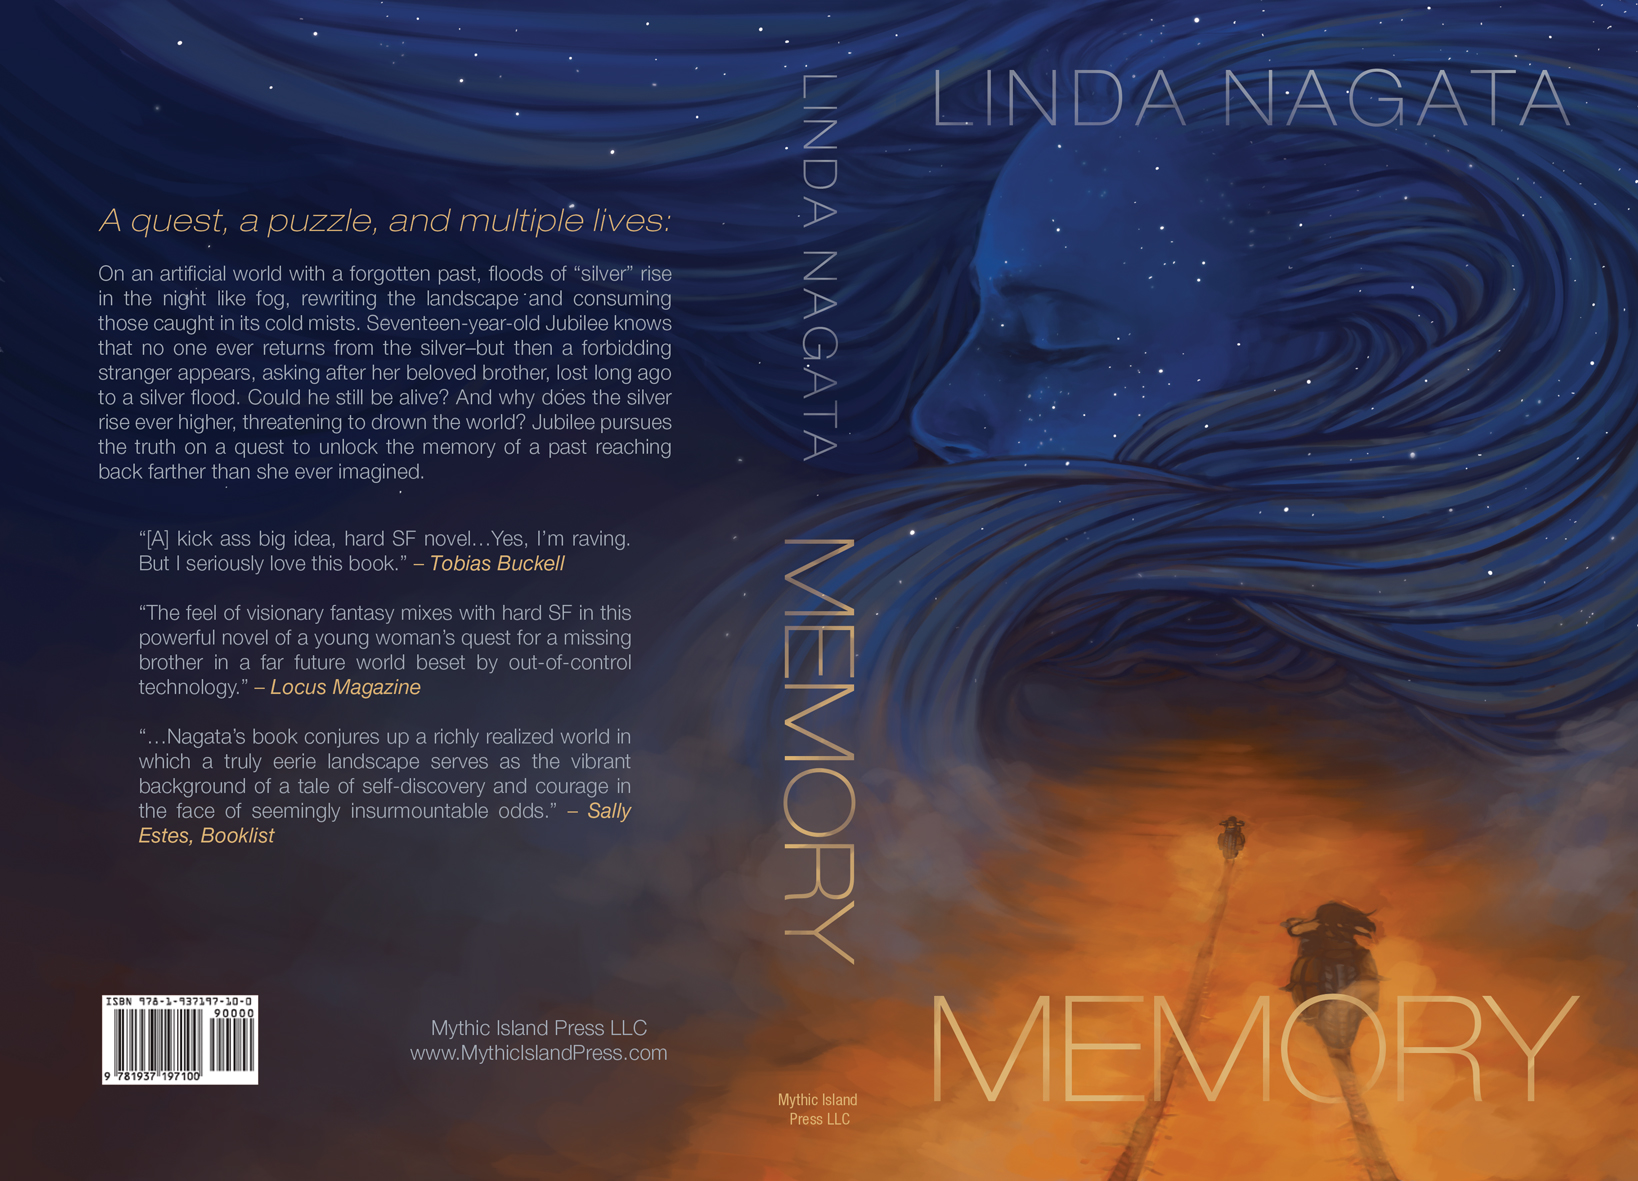 New book cover for MEMORY